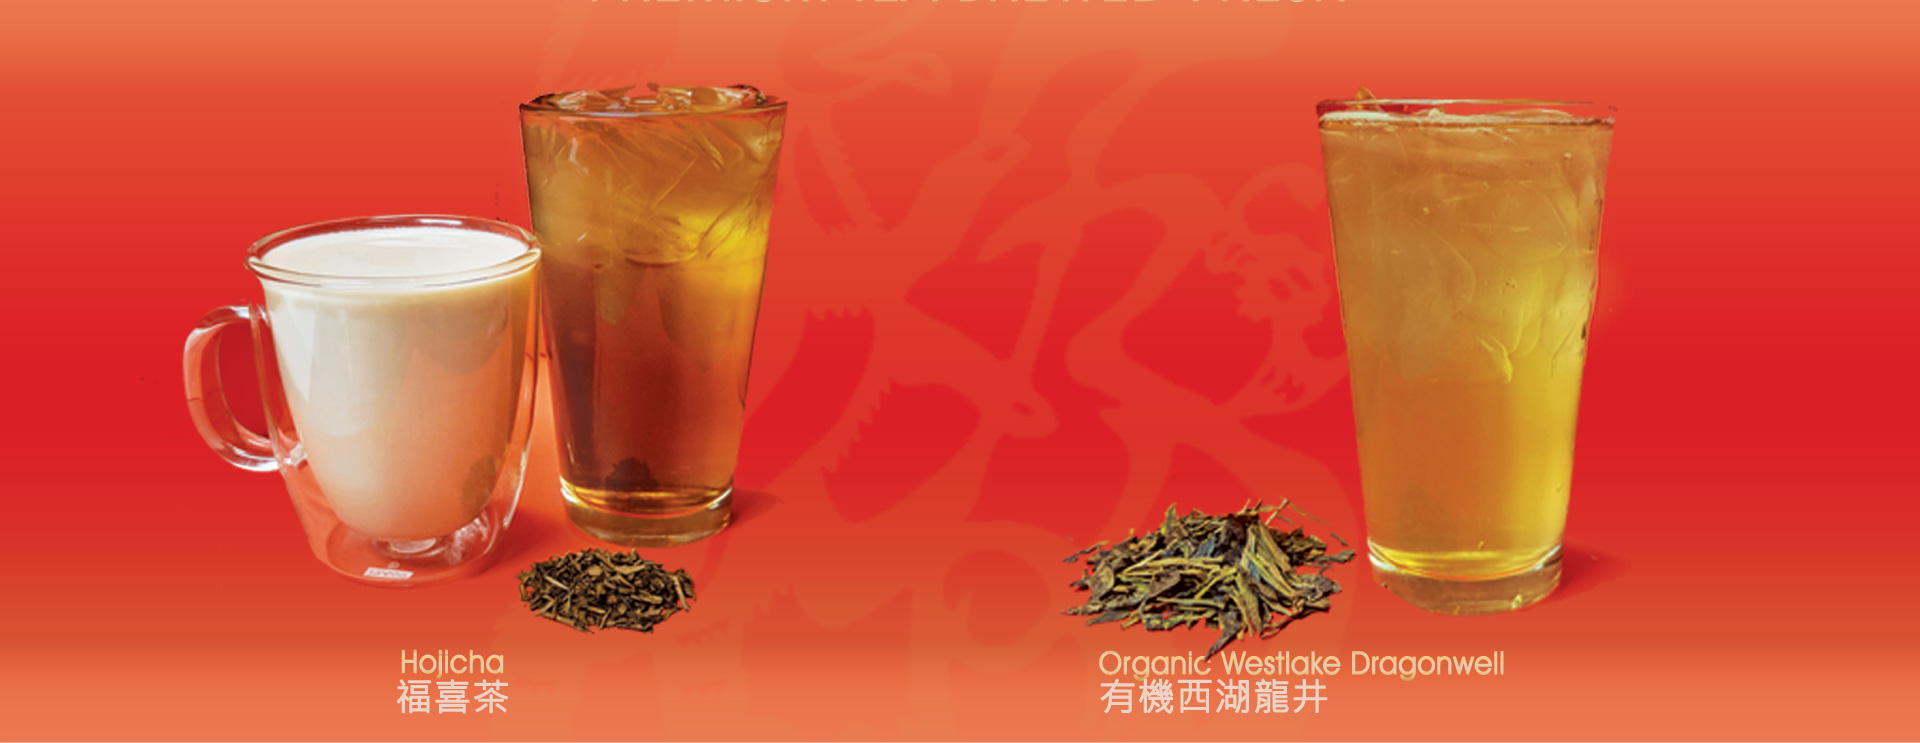 Chinese-New-Year-Promo-Drinks-1920x1080-FOR-TENJU-WEBSITE2.jpg